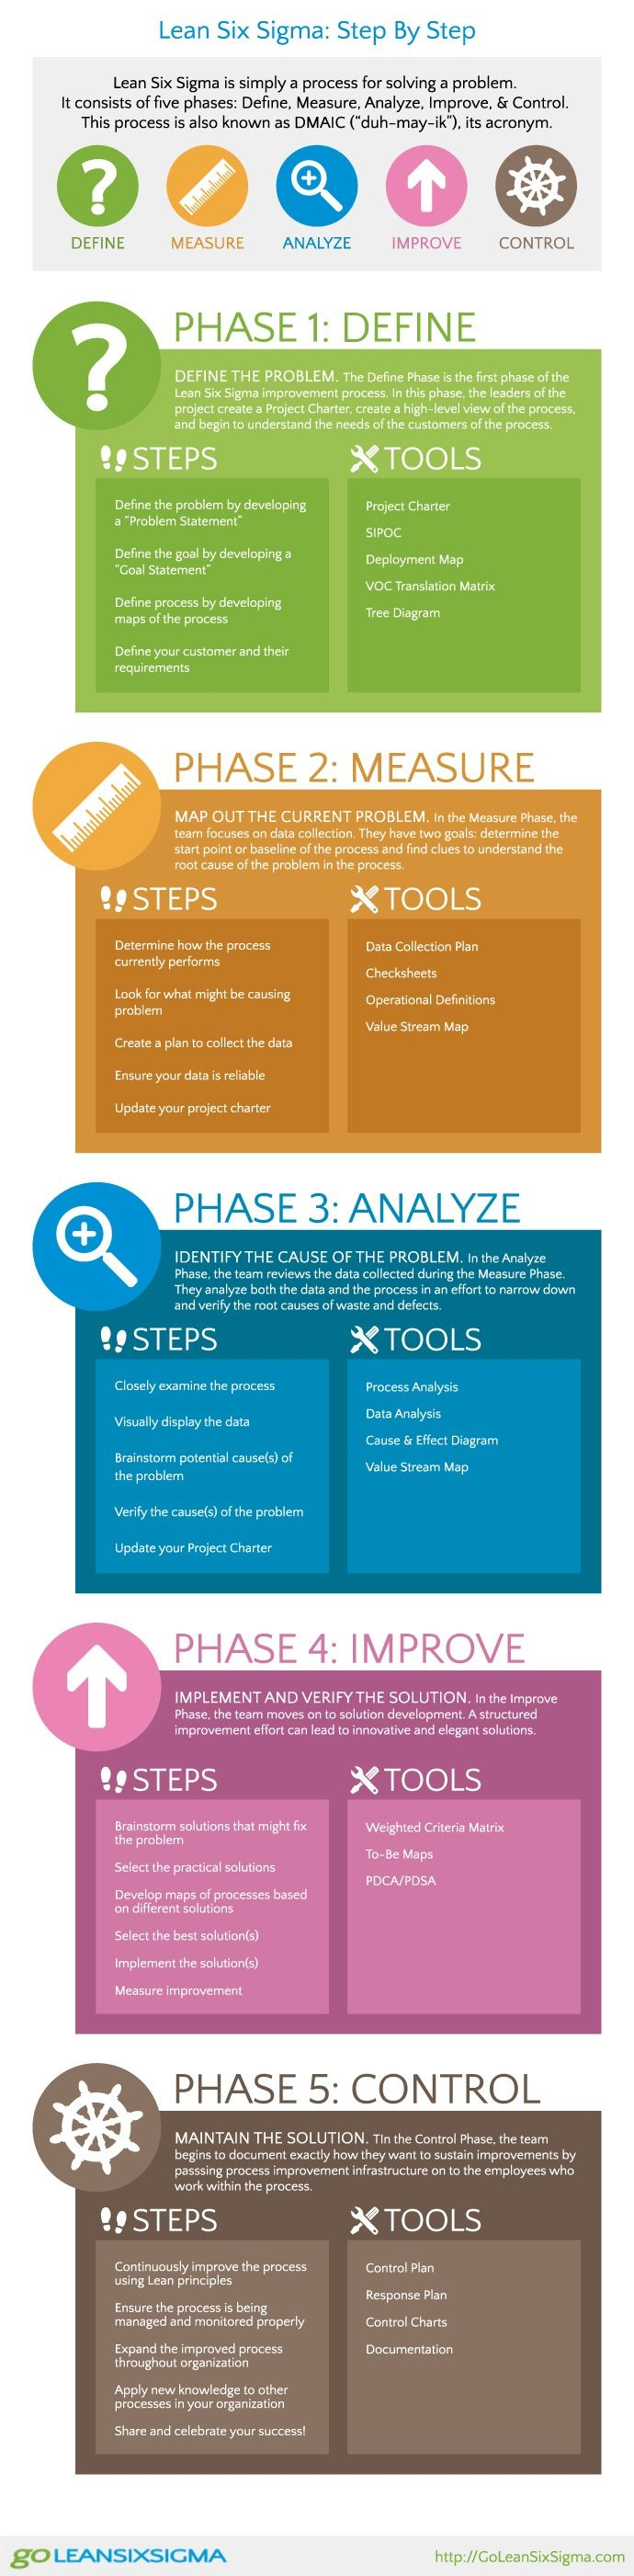 dmaic step by step infographic